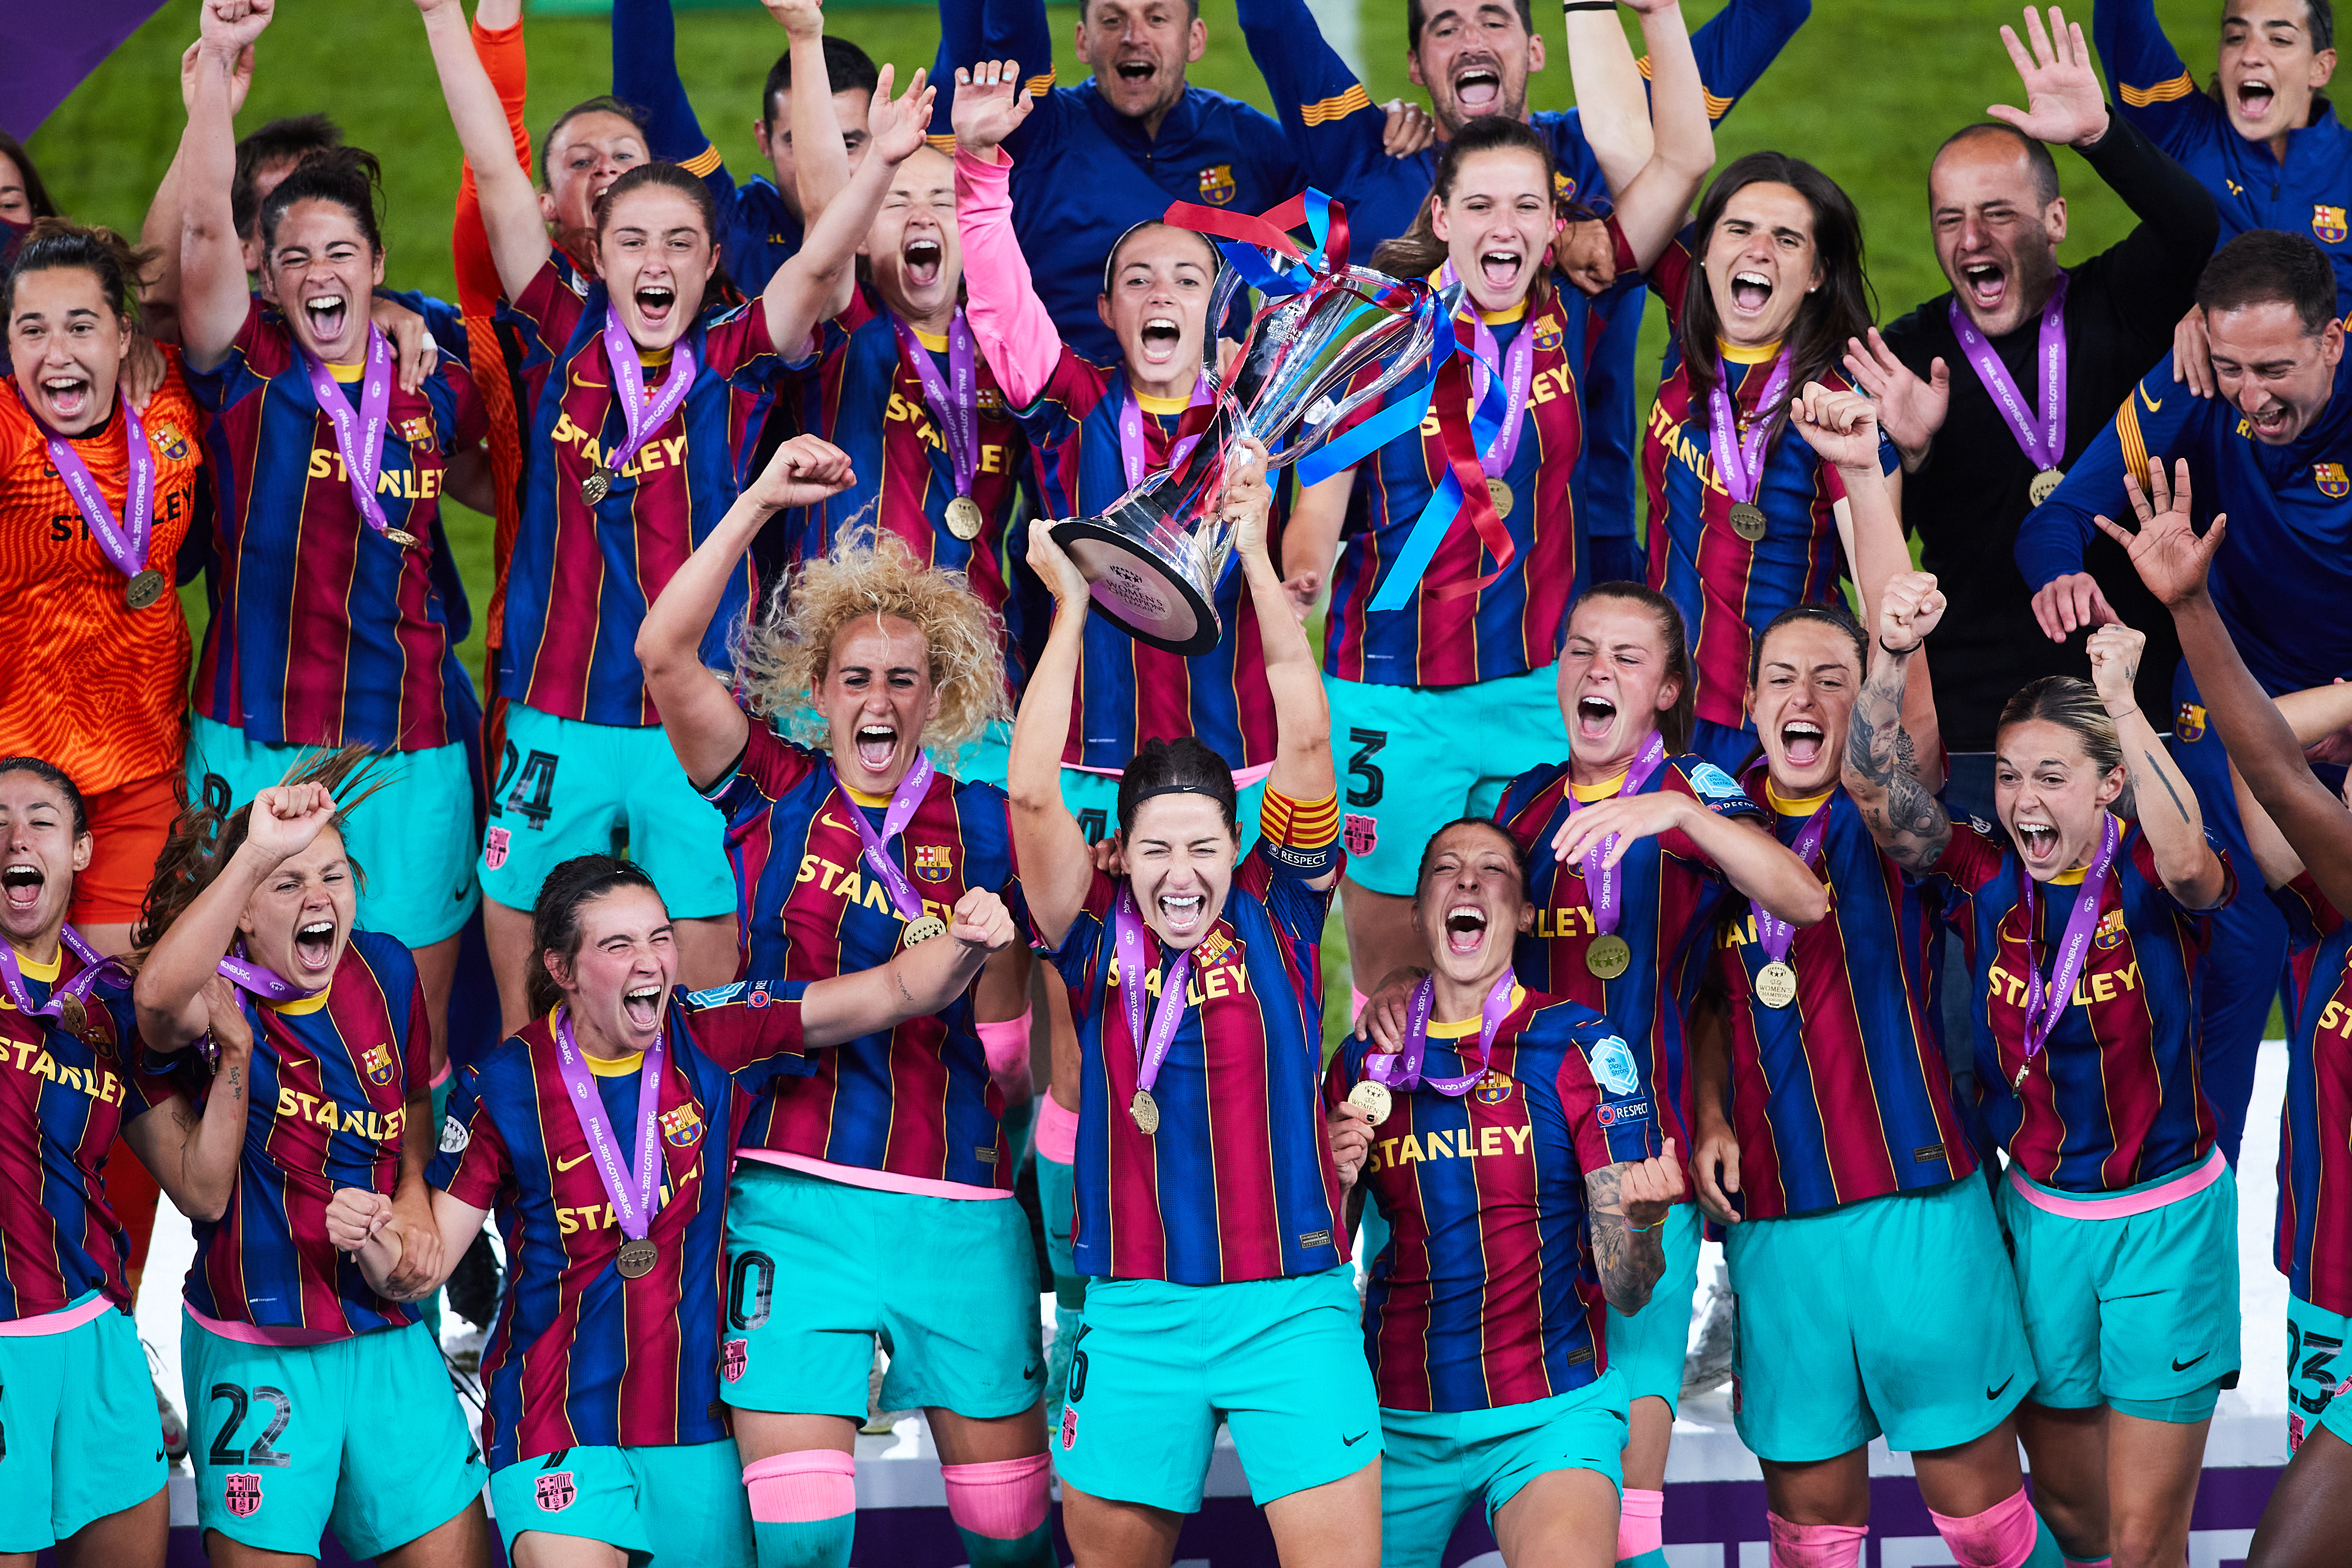 YouTube will stream the UEFA Women's Champions League for free | Engadget